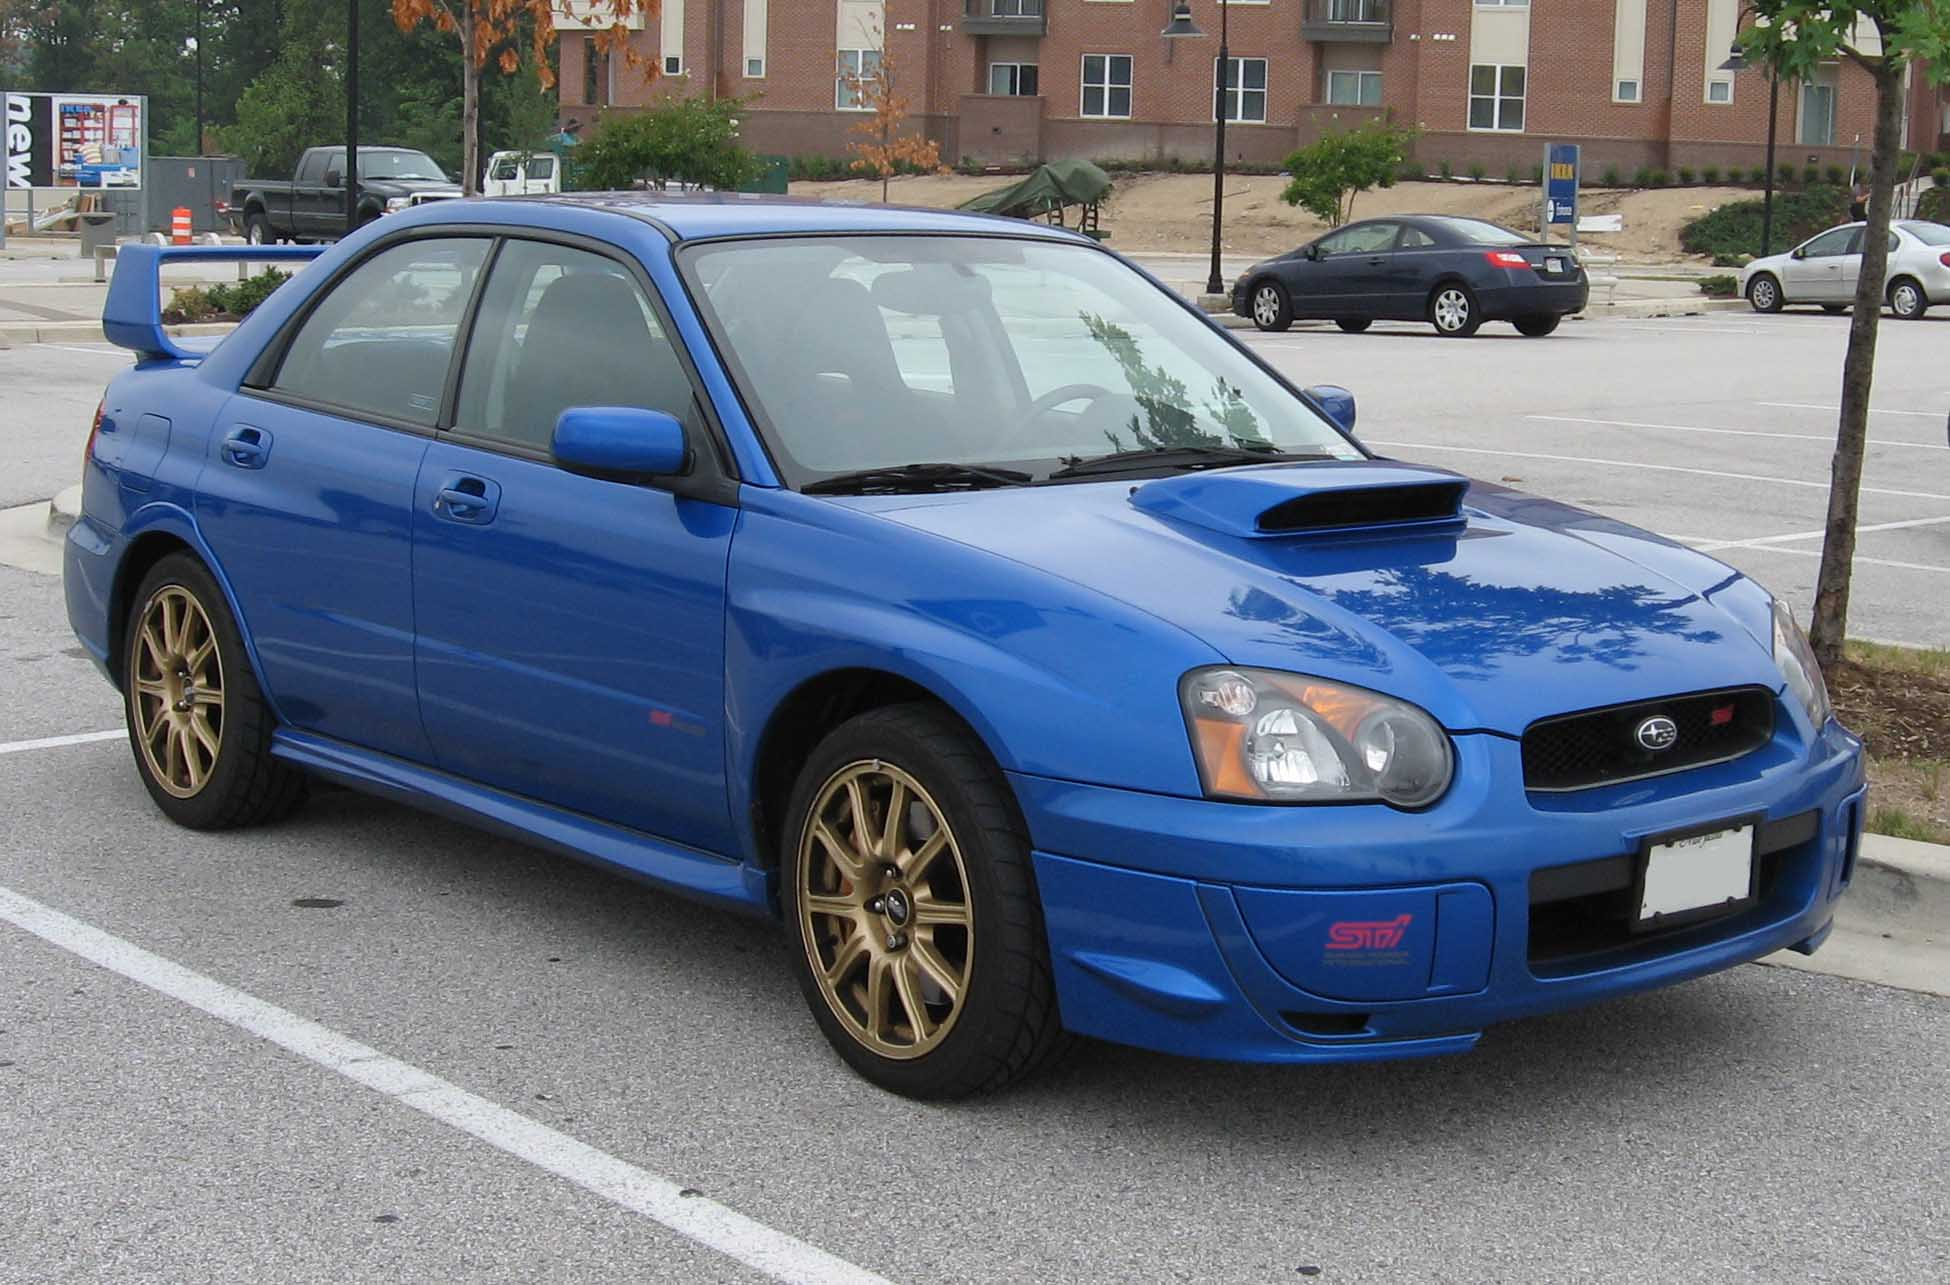 Subaru Impreza Wrx Sti 2004 Review Amazing Pictures And Images Look At The Car